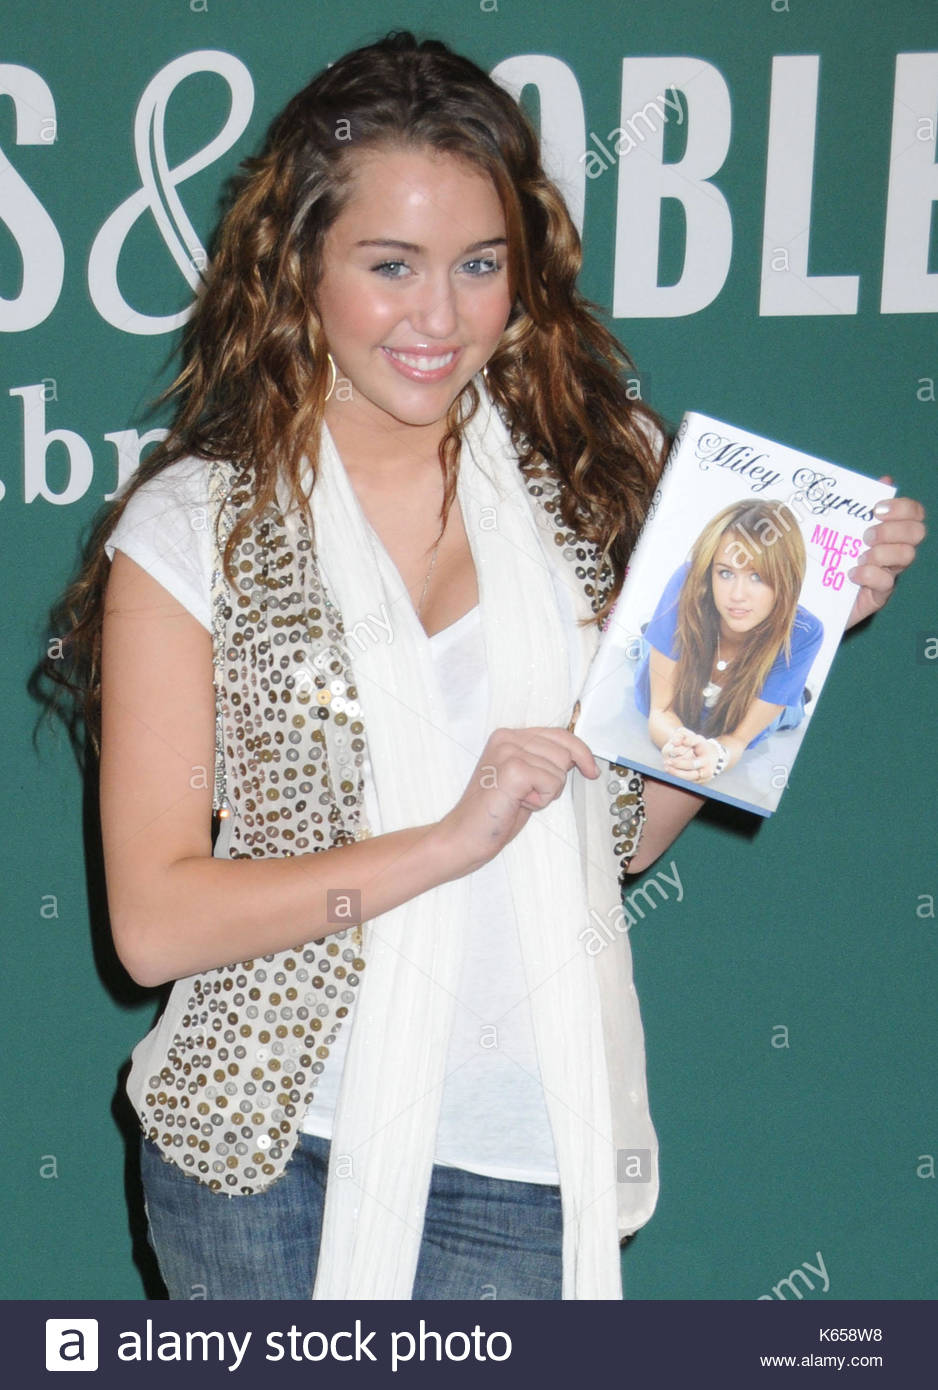 Miley cyrus actress and singer miley cyrus daughter of billy ray miley cyrus actress and singer miley cyrus daughter of billy ray introduces her first ever book entitled miles to go at a meet and greet for fans m4hsunfo